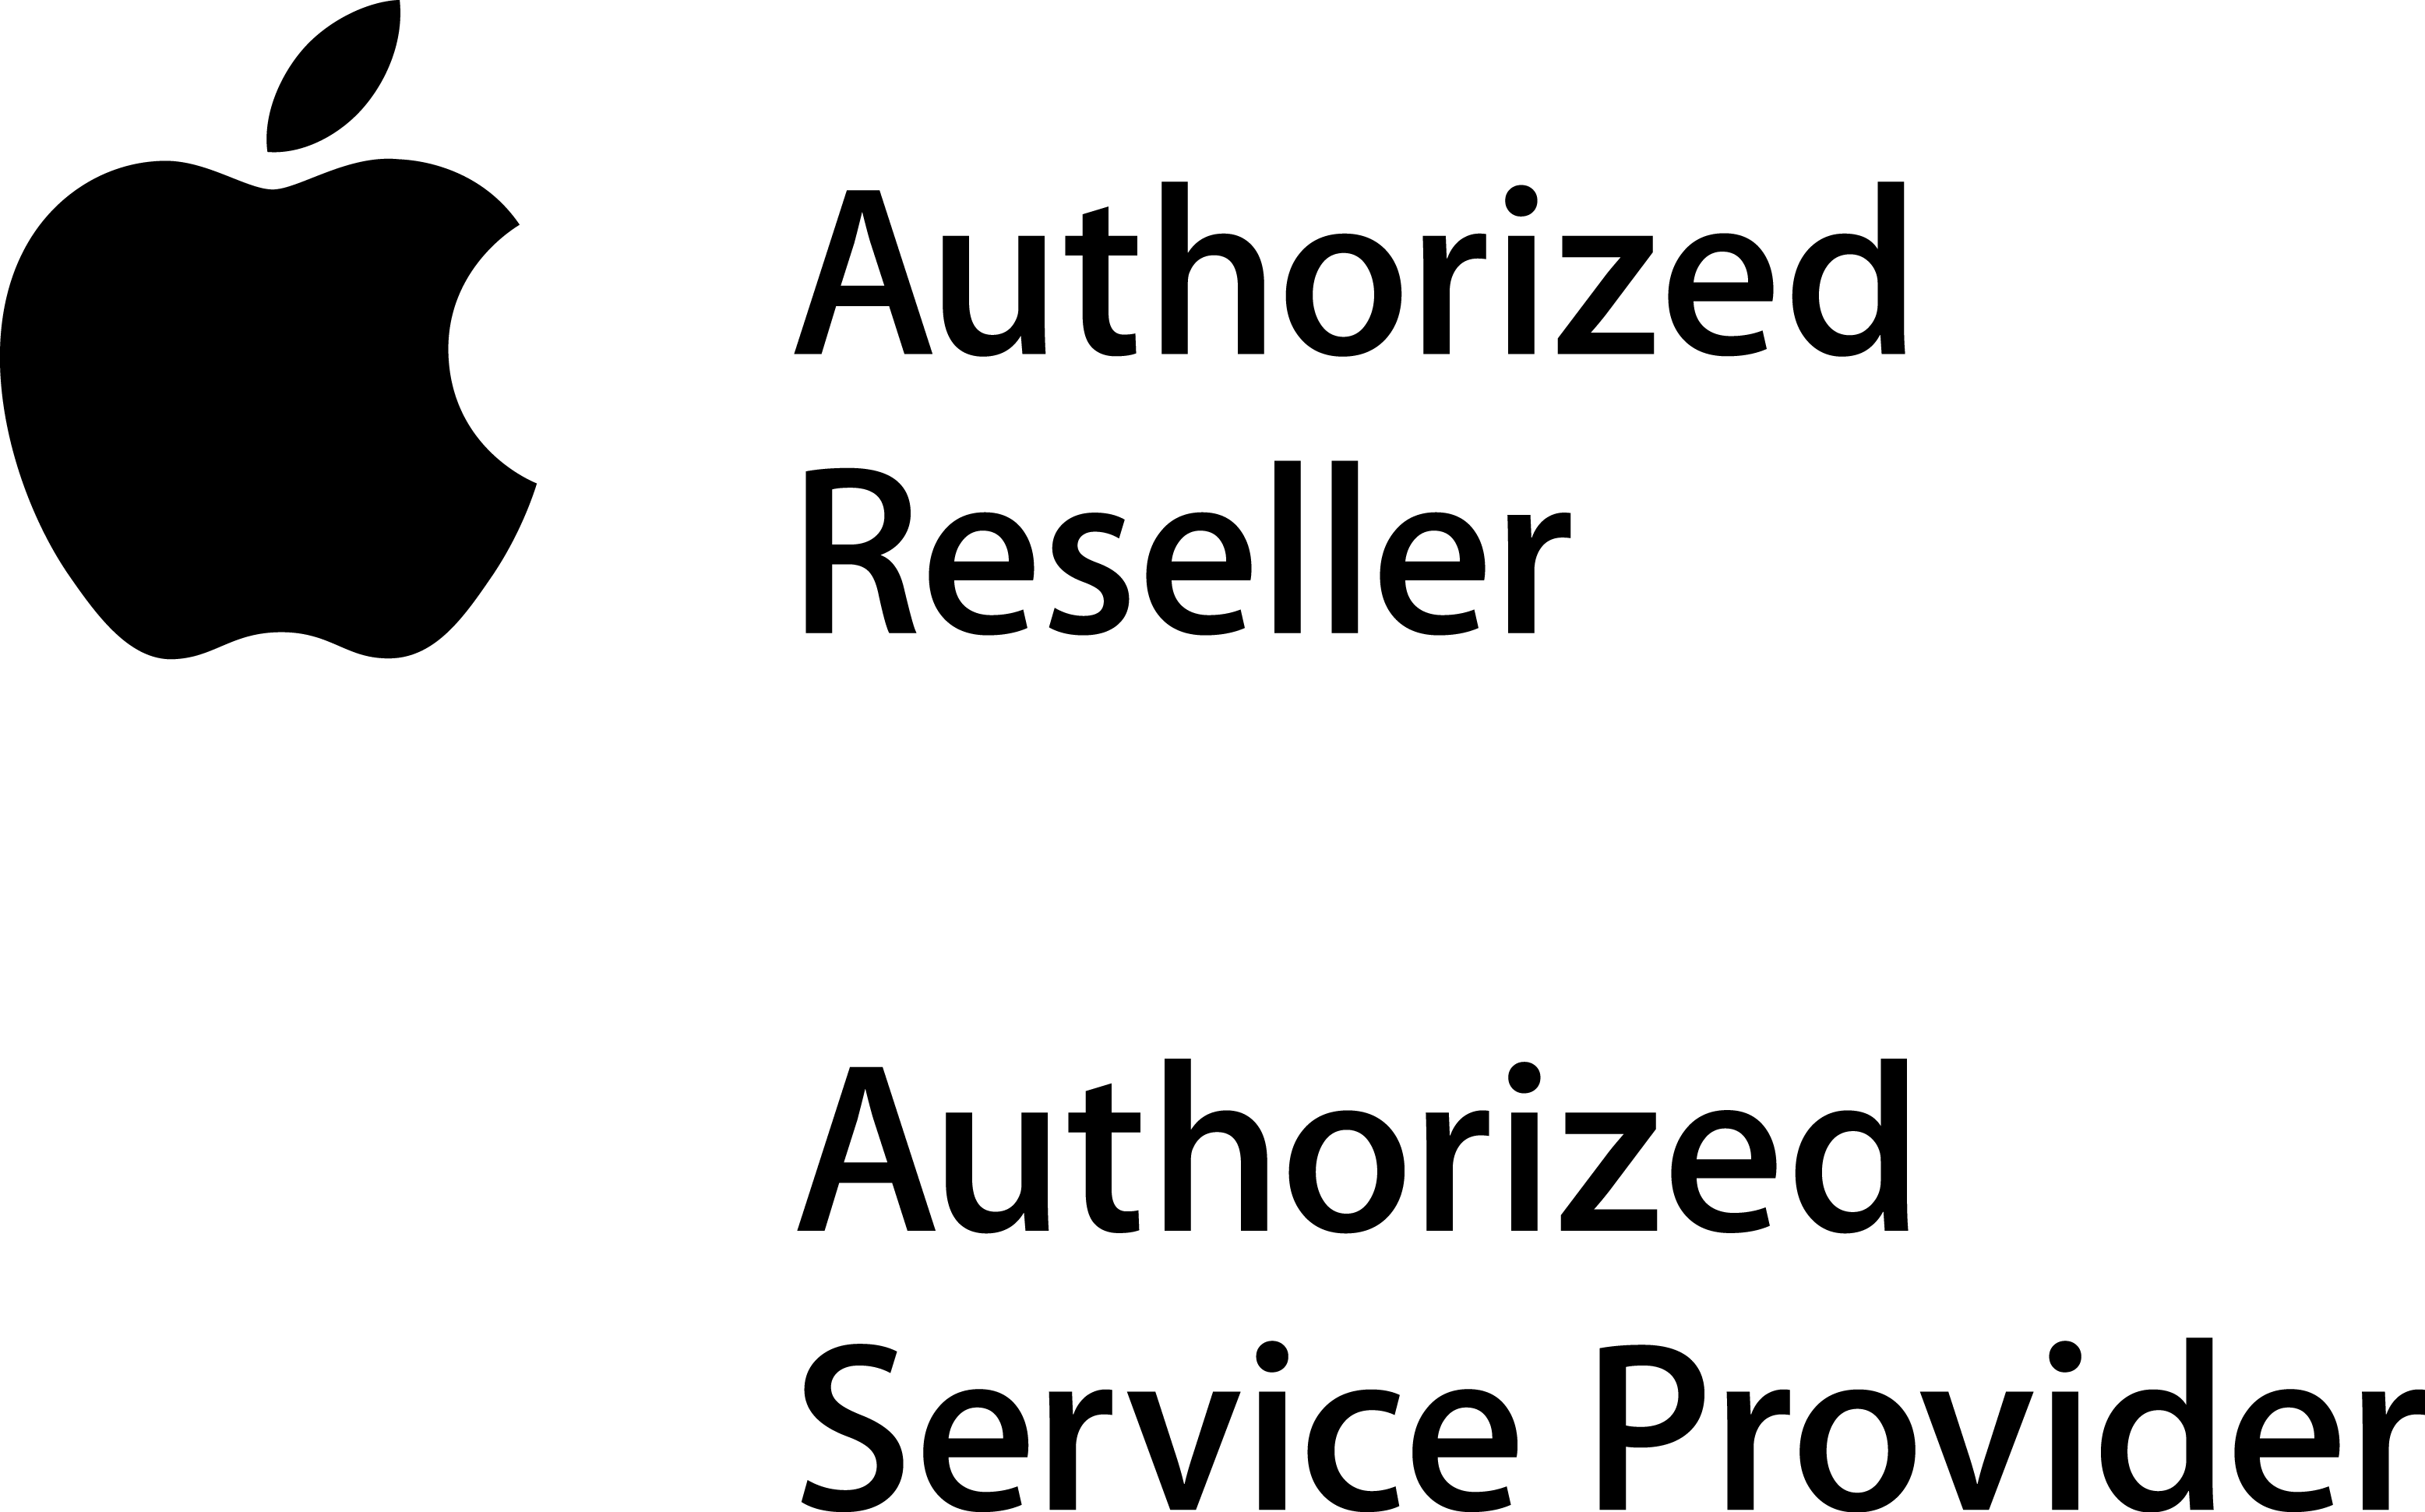 Apple Authorized Reseller and Authorized Service Provider logo - Apple  Authorized Dealer PNG - Apple Authorized Reseller PNG